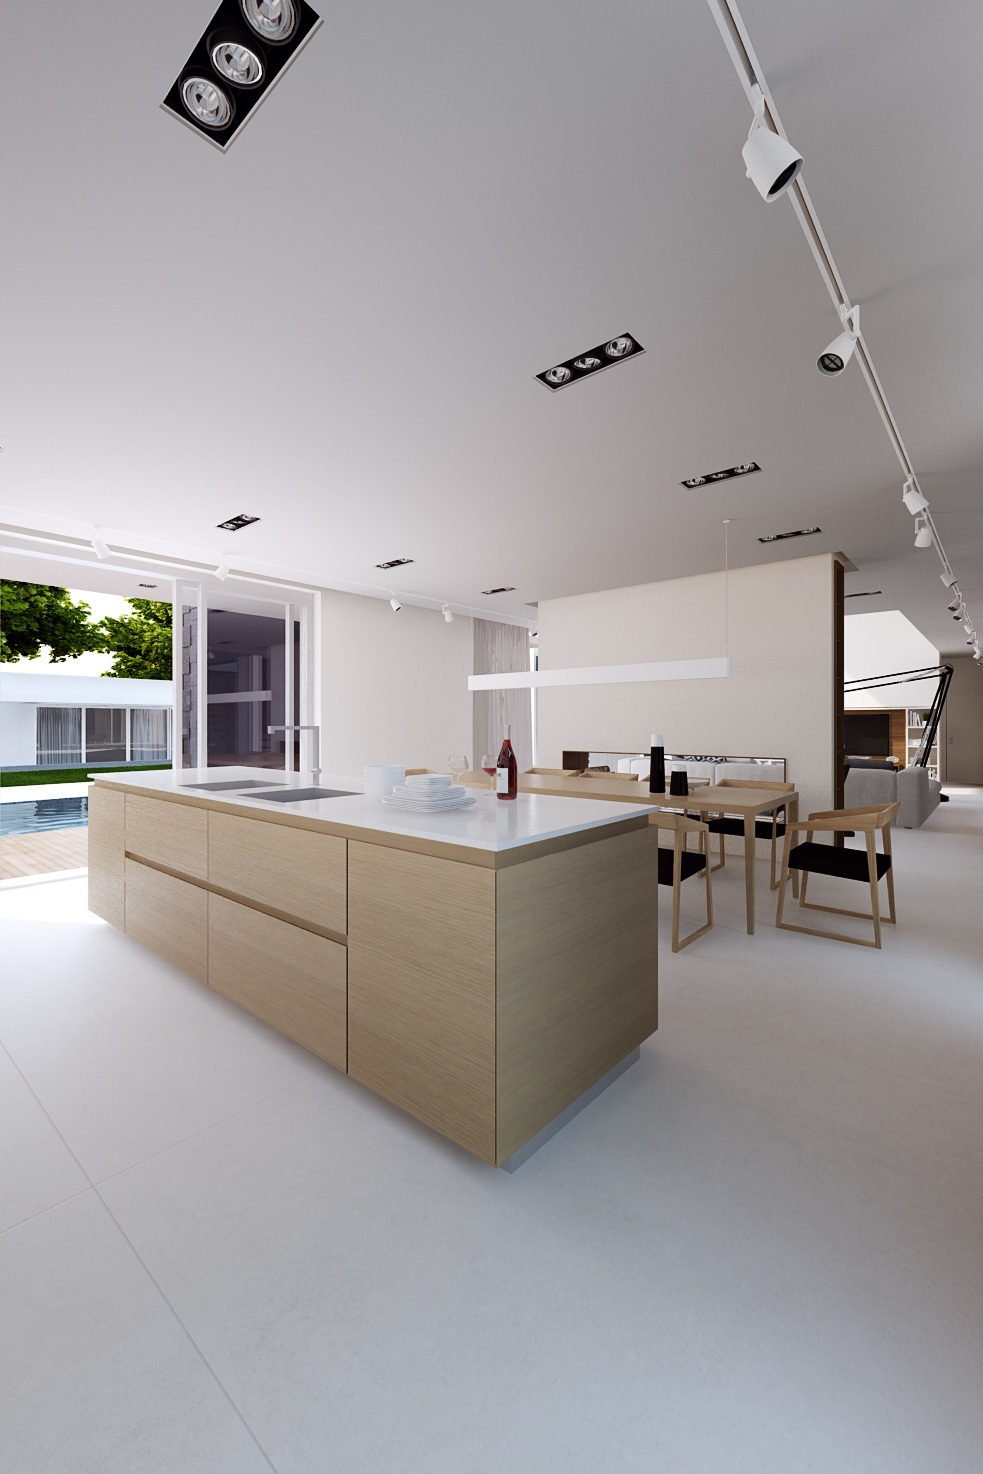 Minimal White Apartment Design - A sleek house that puts a passion for cars on display